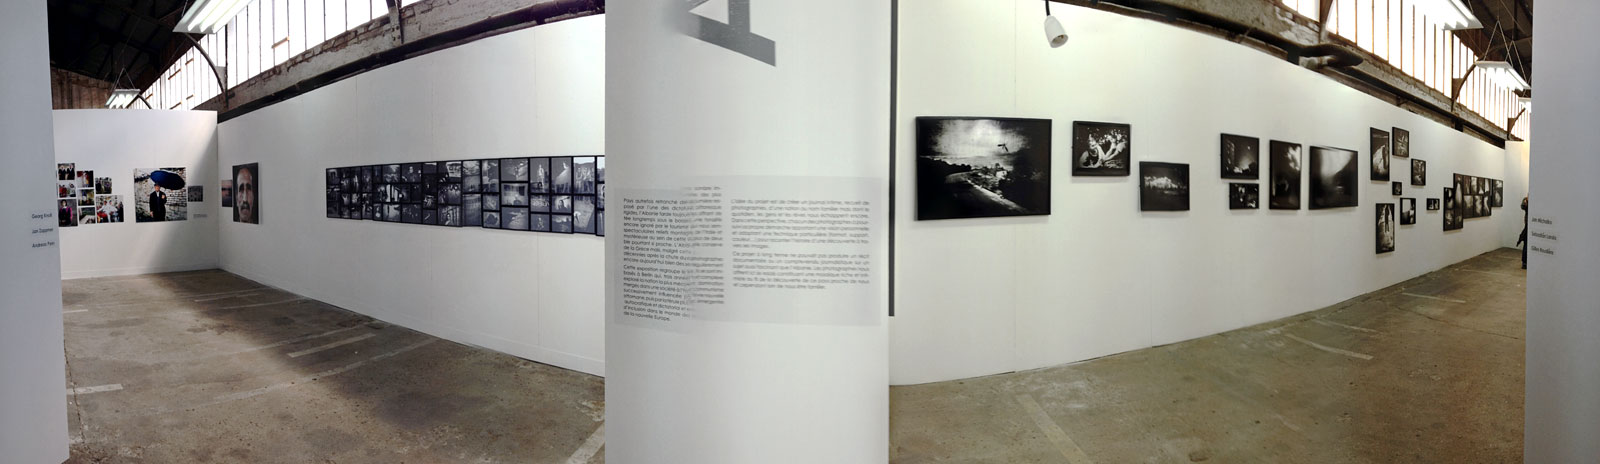 Albania Group Exhibition view